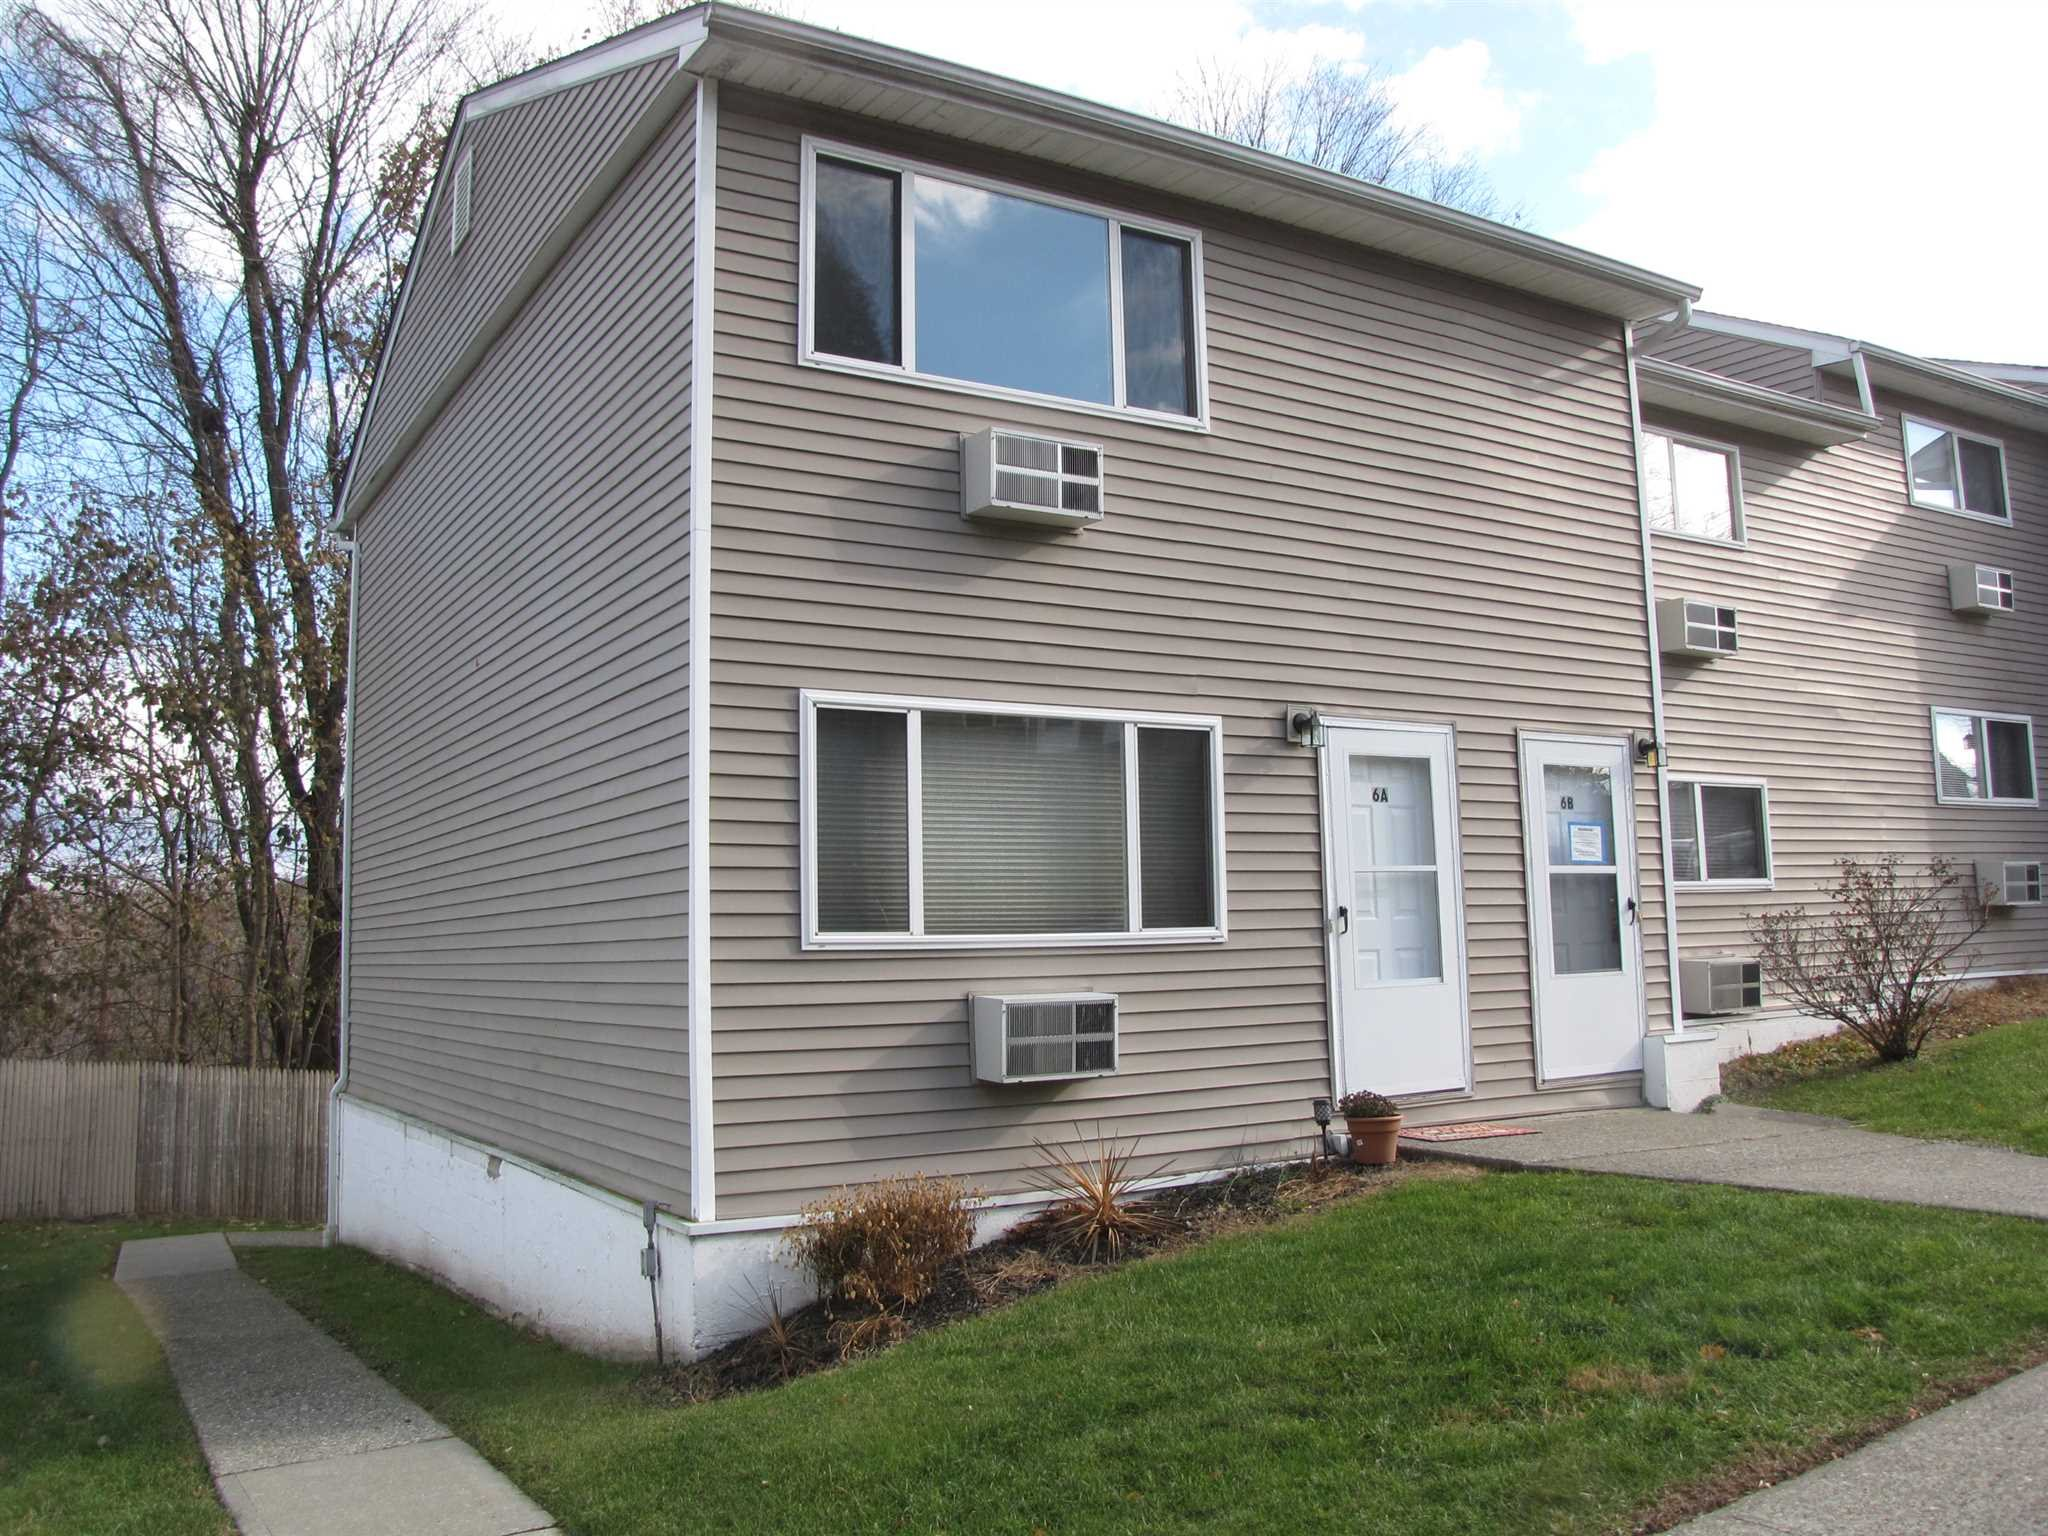 Single Family Home for Sale at FISHKILL GLEN Drive FISHKILL GLEN Drive Fishkill, New York 12524 United States